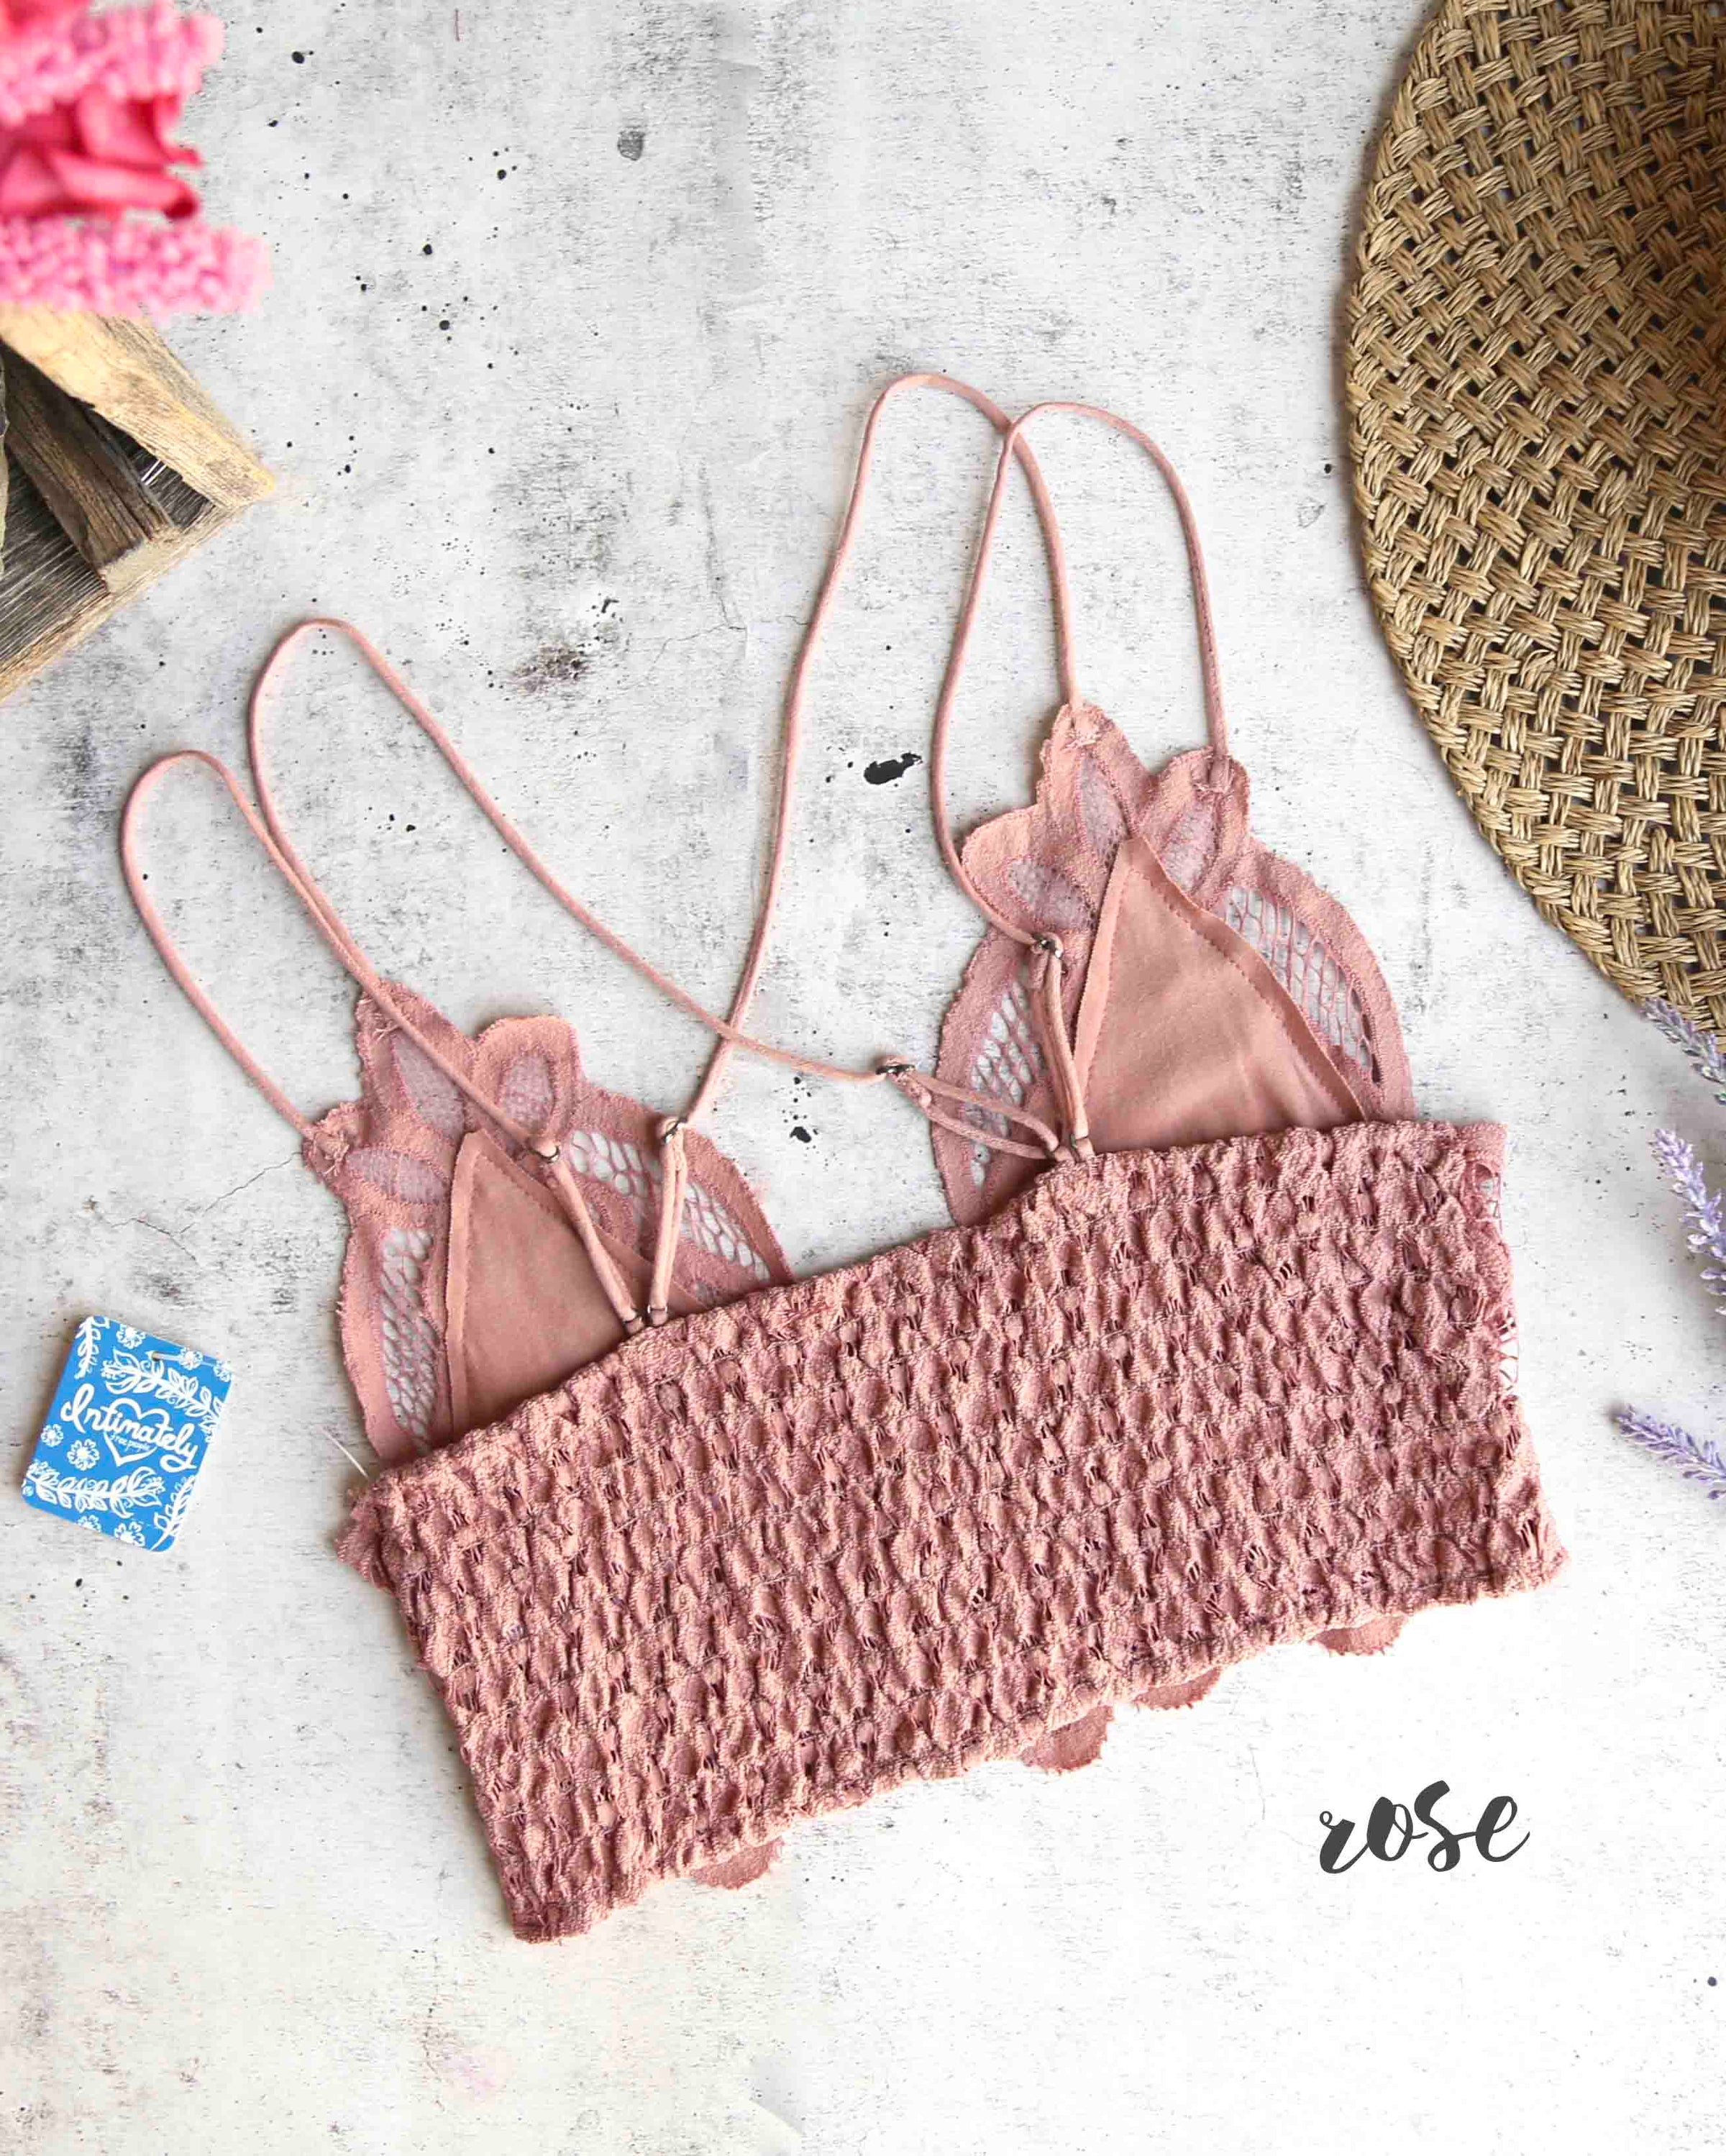 c2605a1603a free people - FP ONE adella crochet lace bralette - more colors